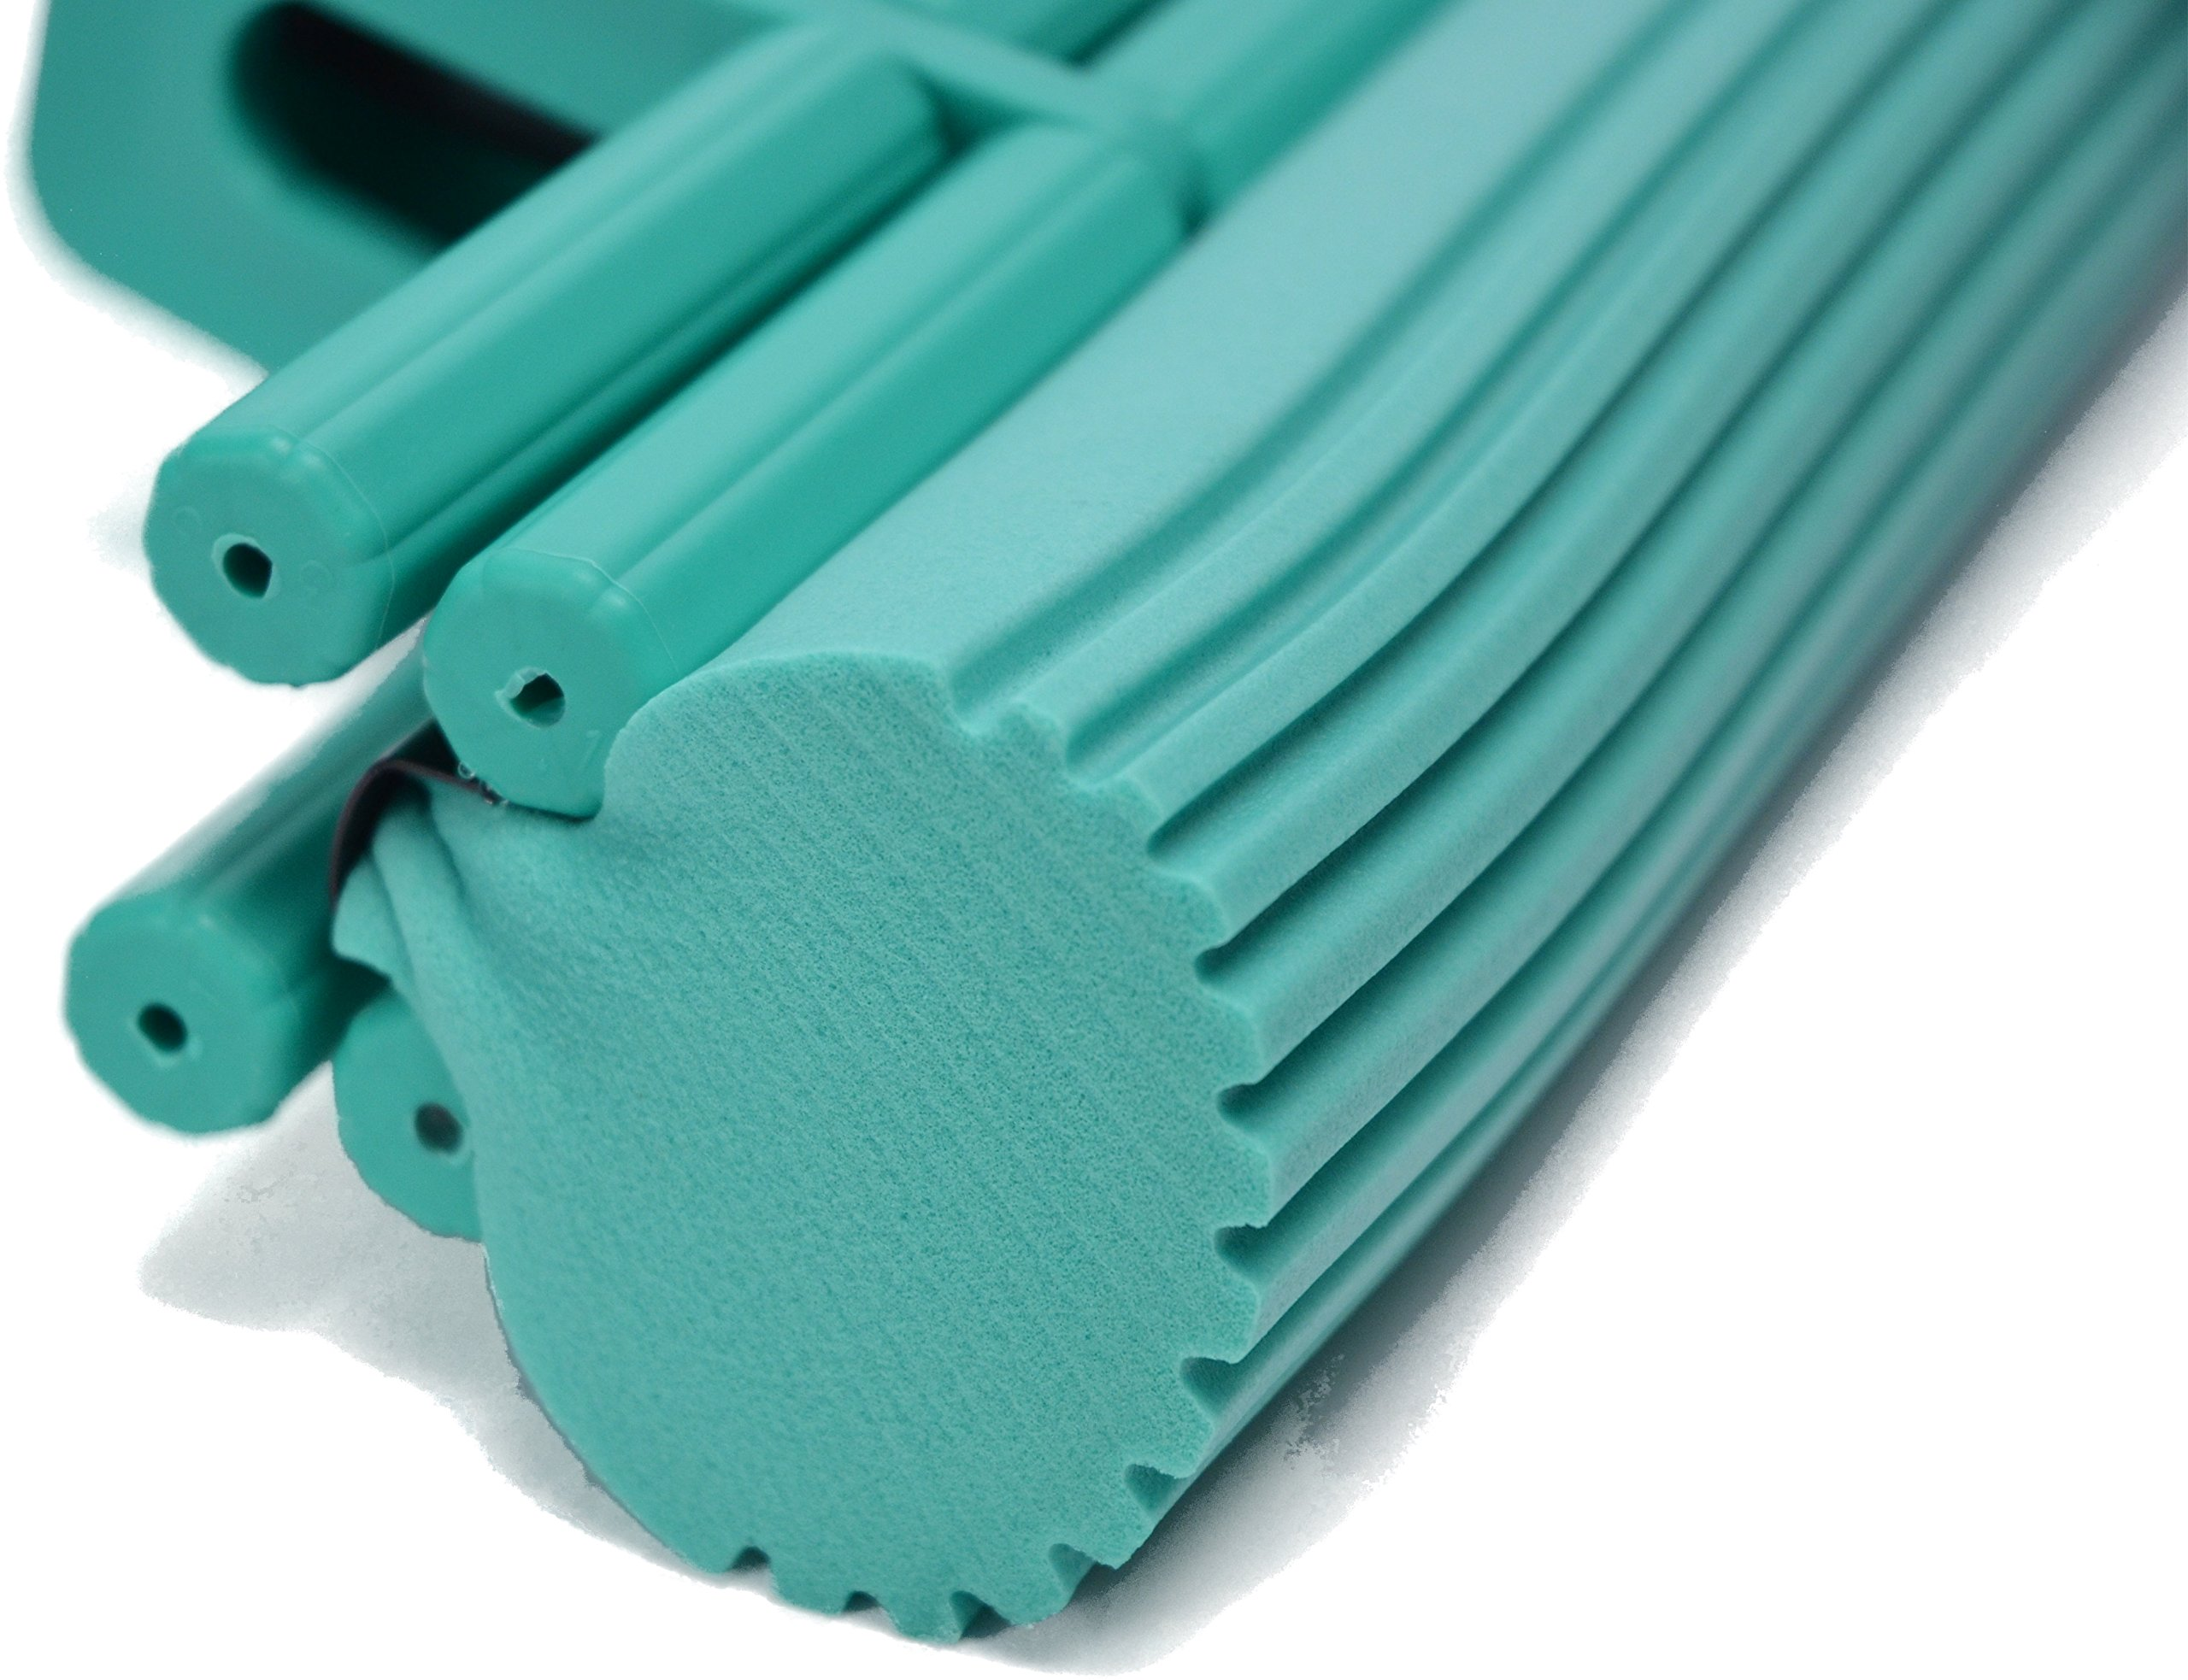 The Super Standard 11'' Double Roller PVA Sponge Mop Set (Mop and 1 Extra Refill) by The Super (Image #3)